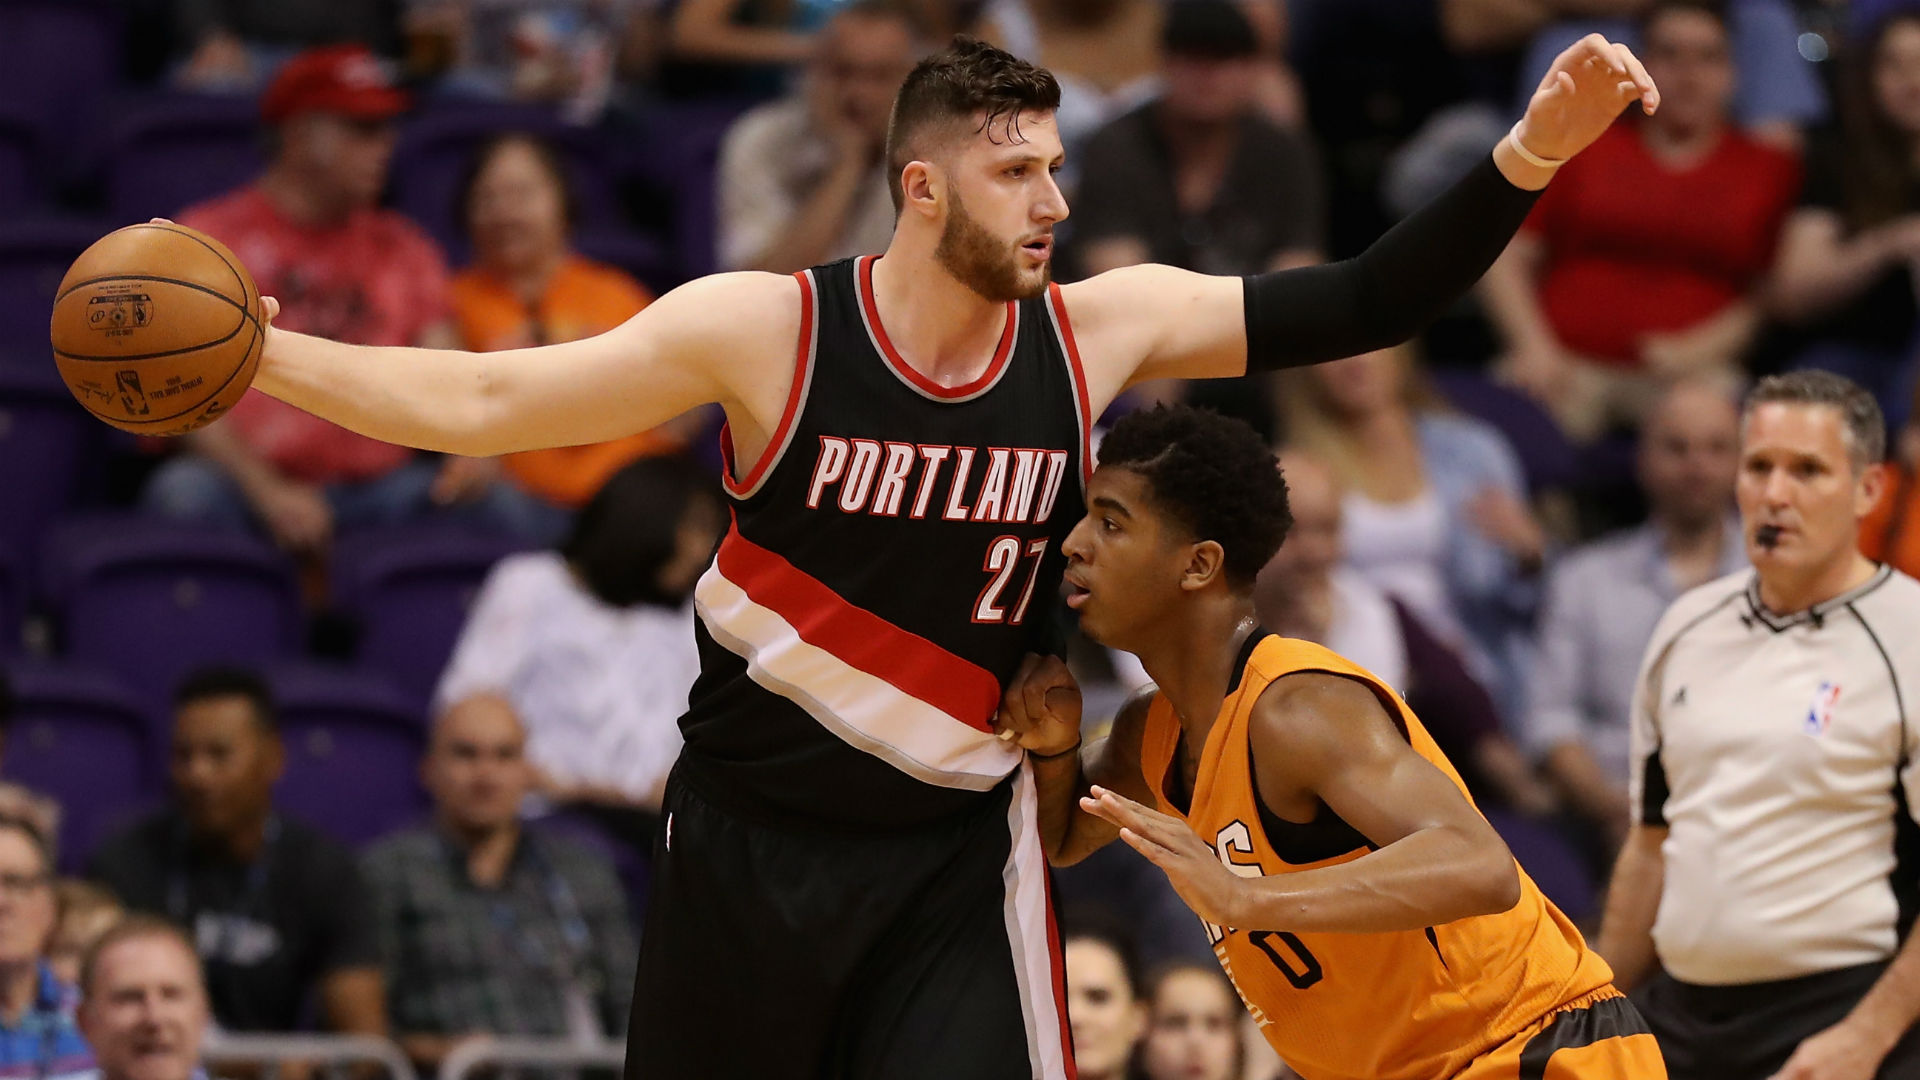 Blazers' Jusuf Nurkic: 76ers' Joel Embiid 'tries to be more famous than a player'